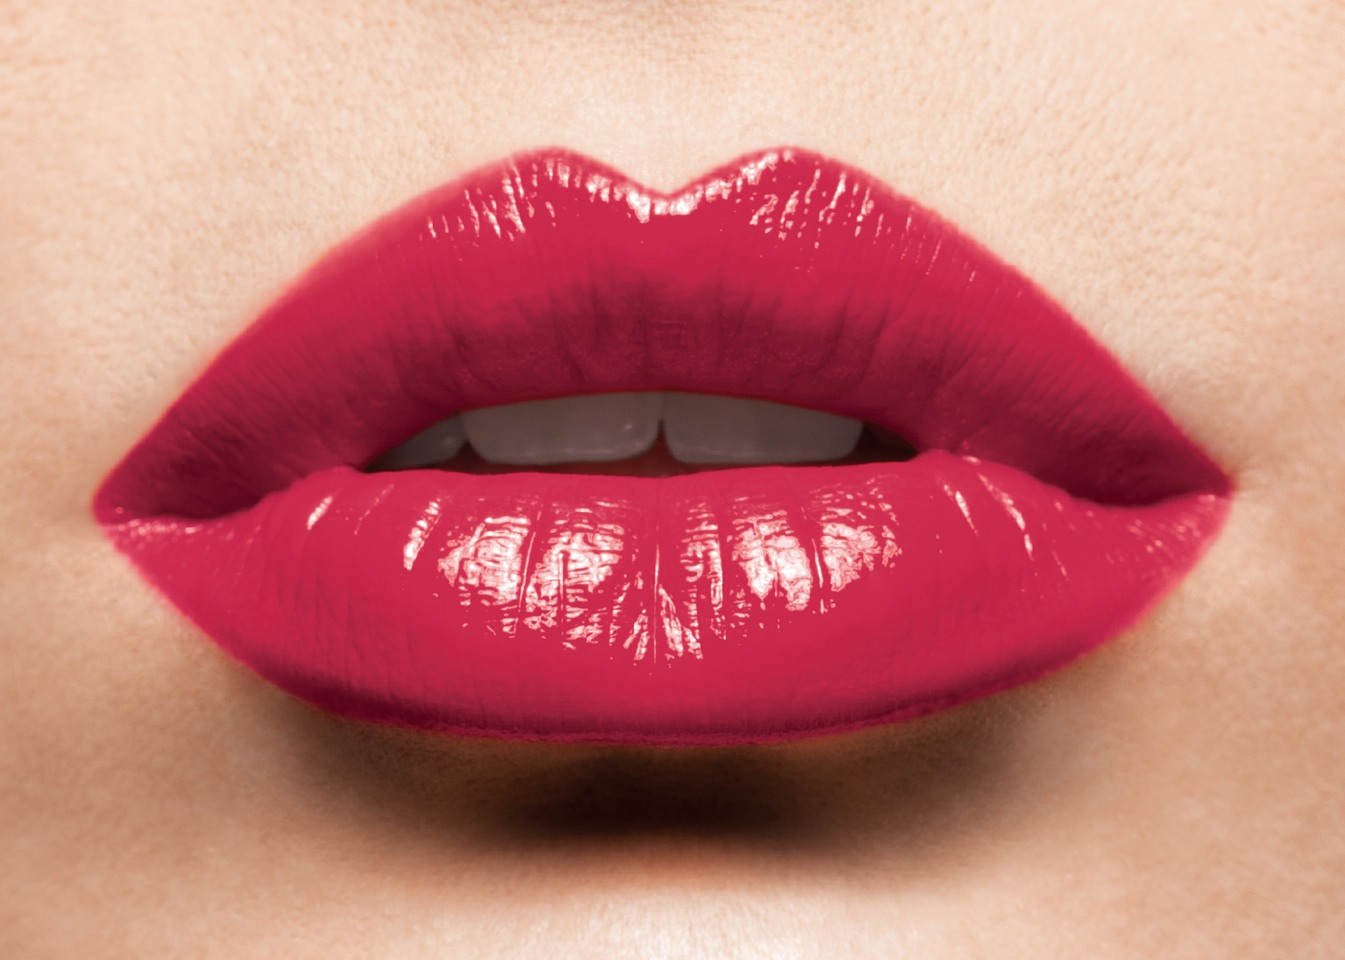 Exfoliate your lips to make them super soft. Pretty lips are a great asset to girl that are easy to maintain and beautify.